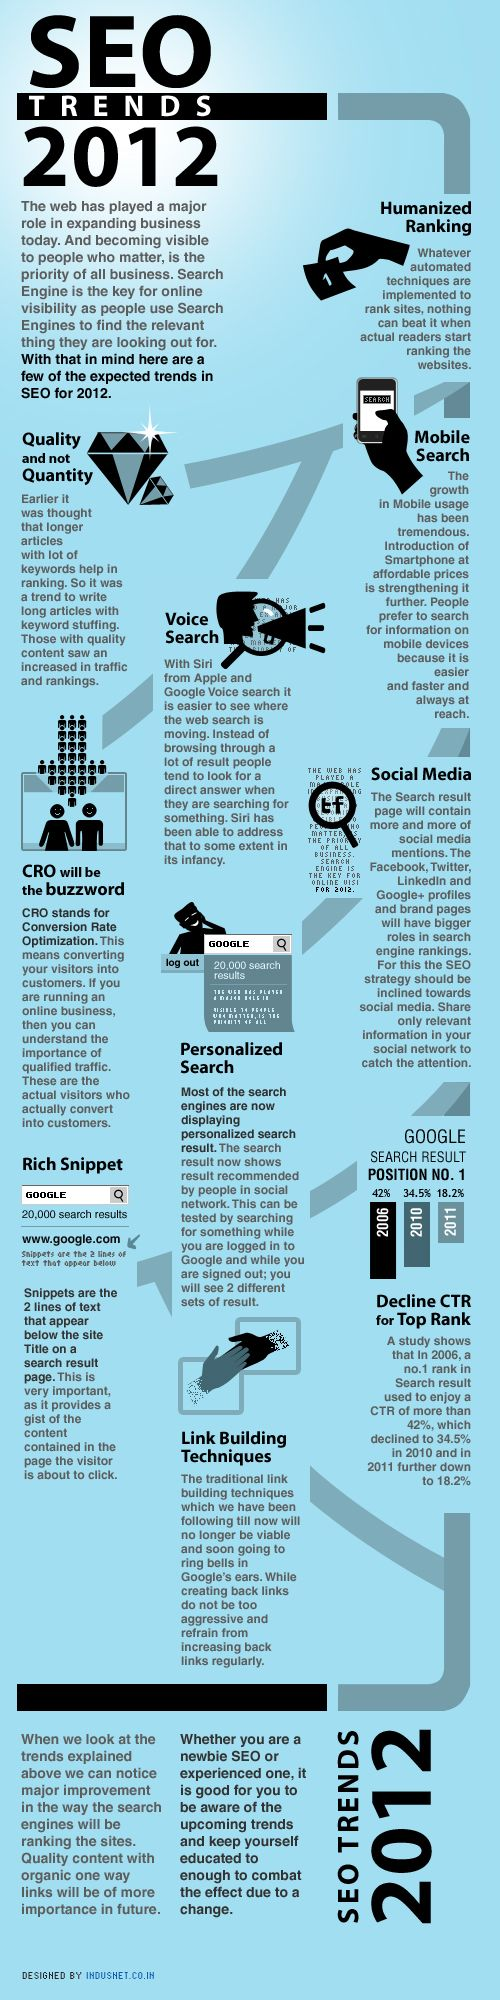 Die wichtigsten SEO Trends 2012 [Infografik]   Humanized Ranking, Mobile Search, Quality not Quantity, Voice Search, Conversion Rate Optimisation, CTR. #infographic.  Via www.ensego.de